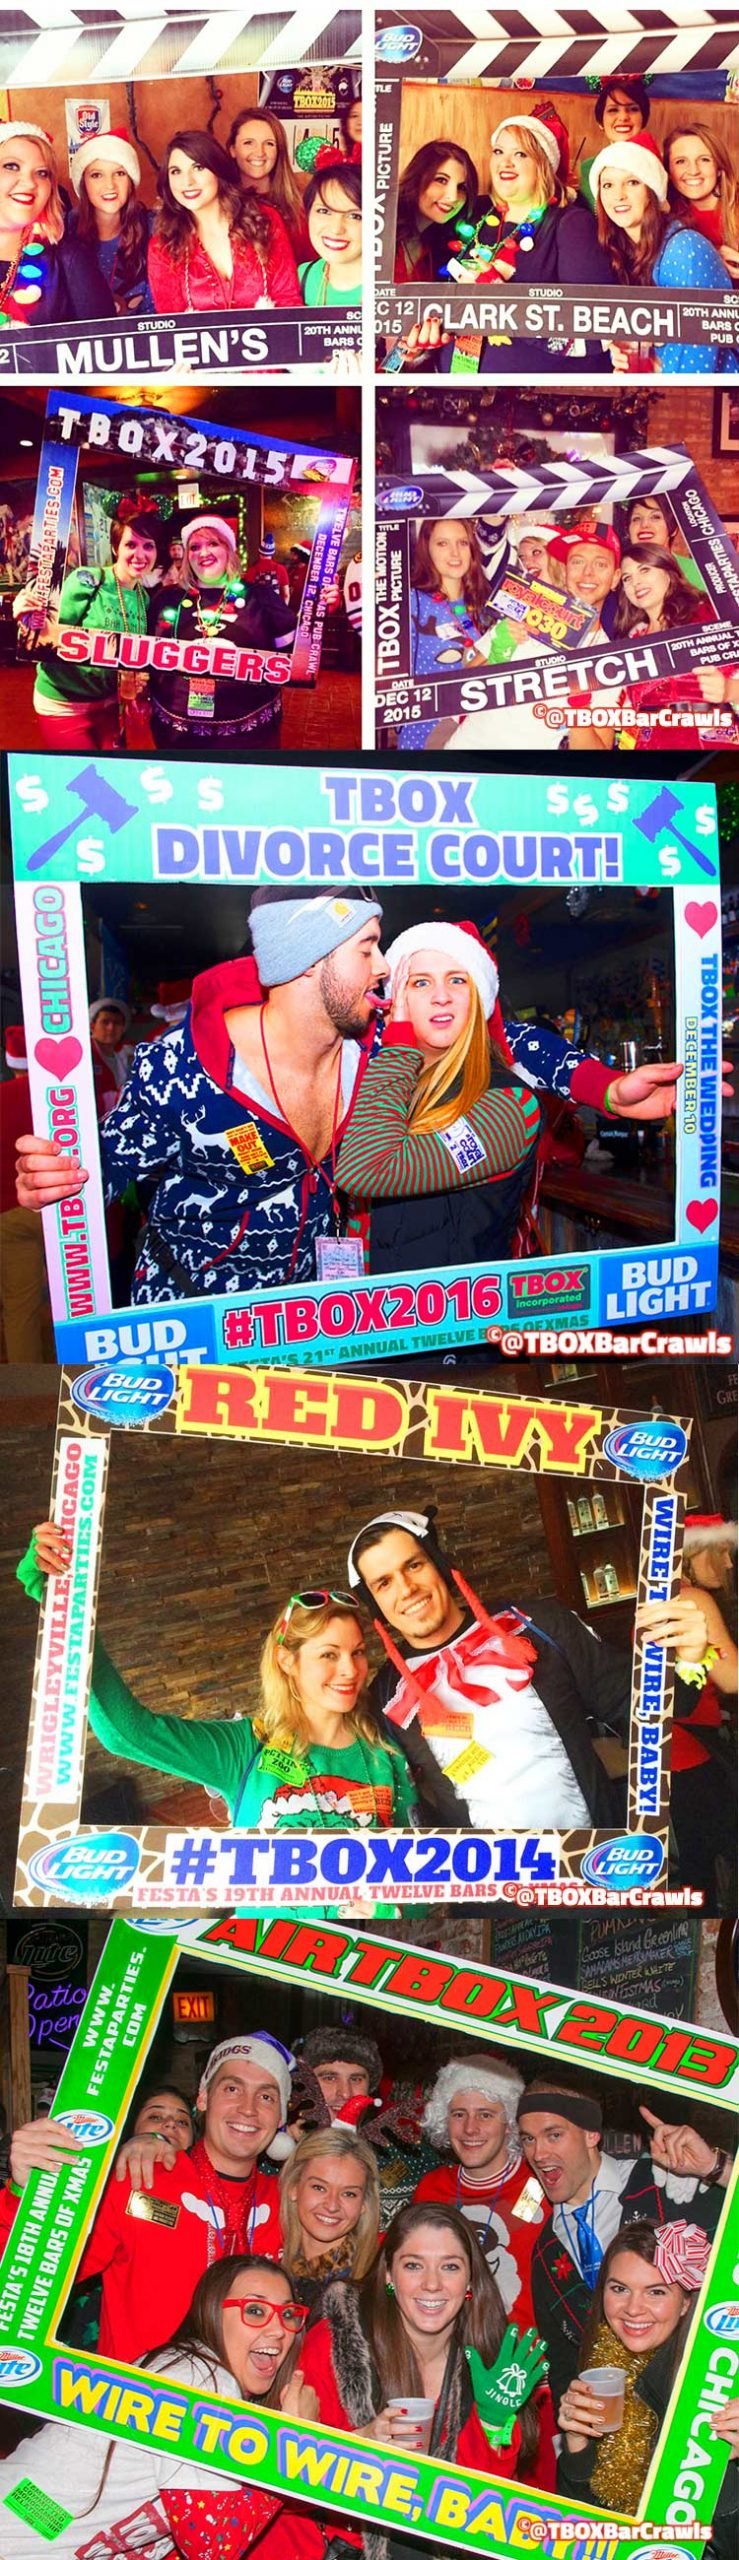 TBOX Bar Crawl - Picture Frames - Chicago Fun Events, Things to do in Chicago - TBOX